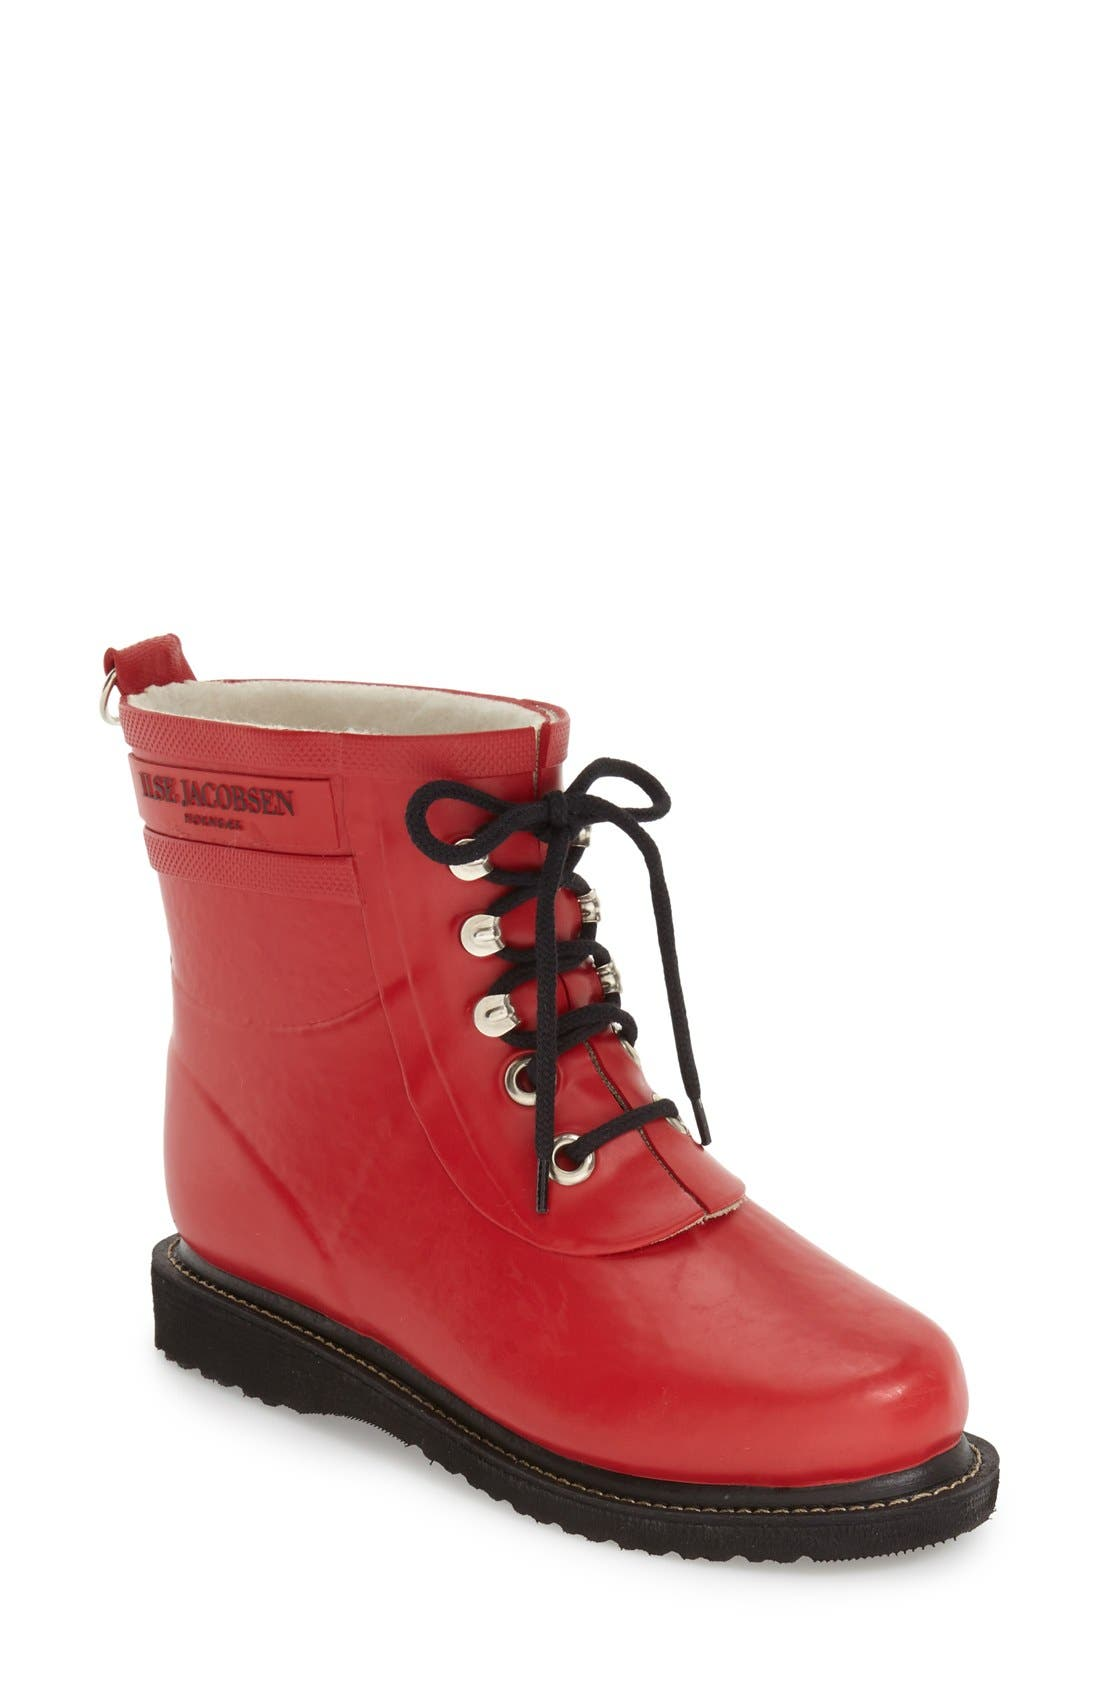 ILSE JACOBSEN 'Rub' Boot in Deep Red